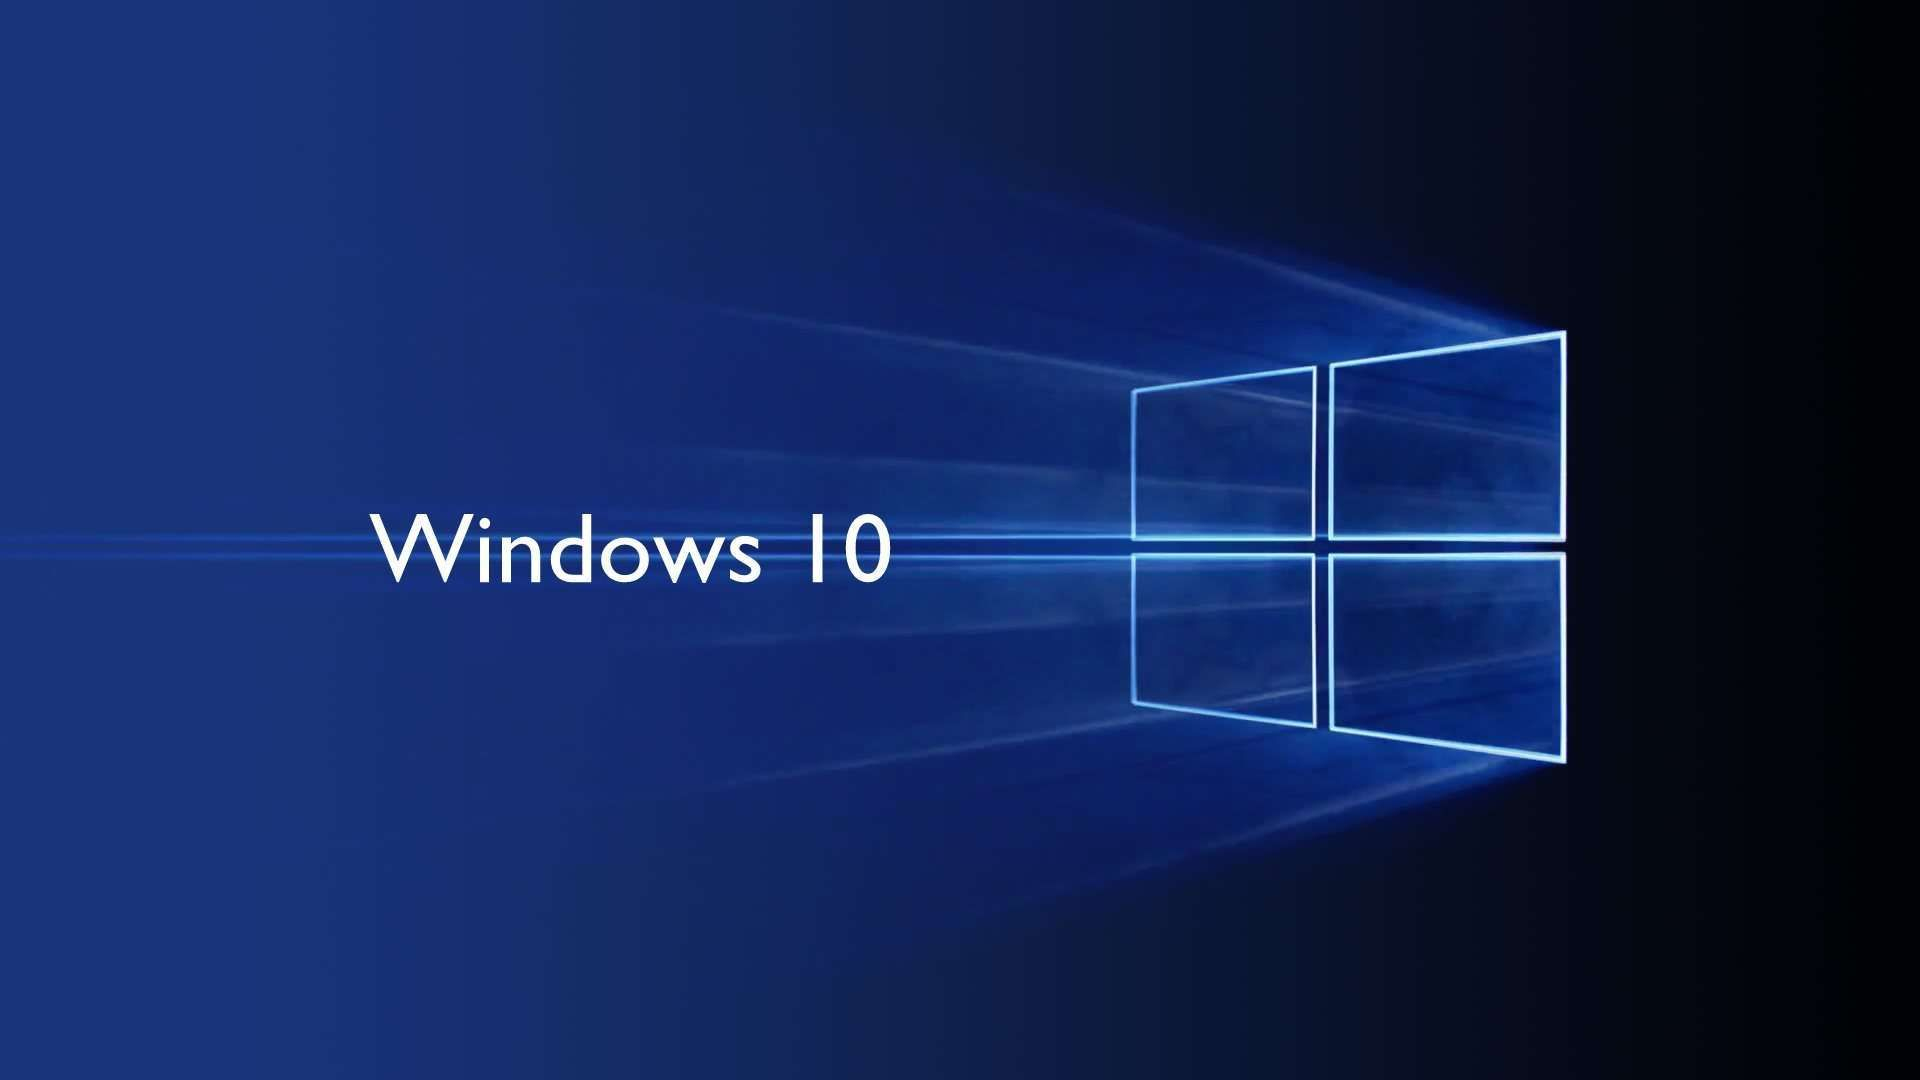 Windows 10 Hd Desktop 1080p Wallpaper Windows 10 Windows 10 Microsoft Wallpaper